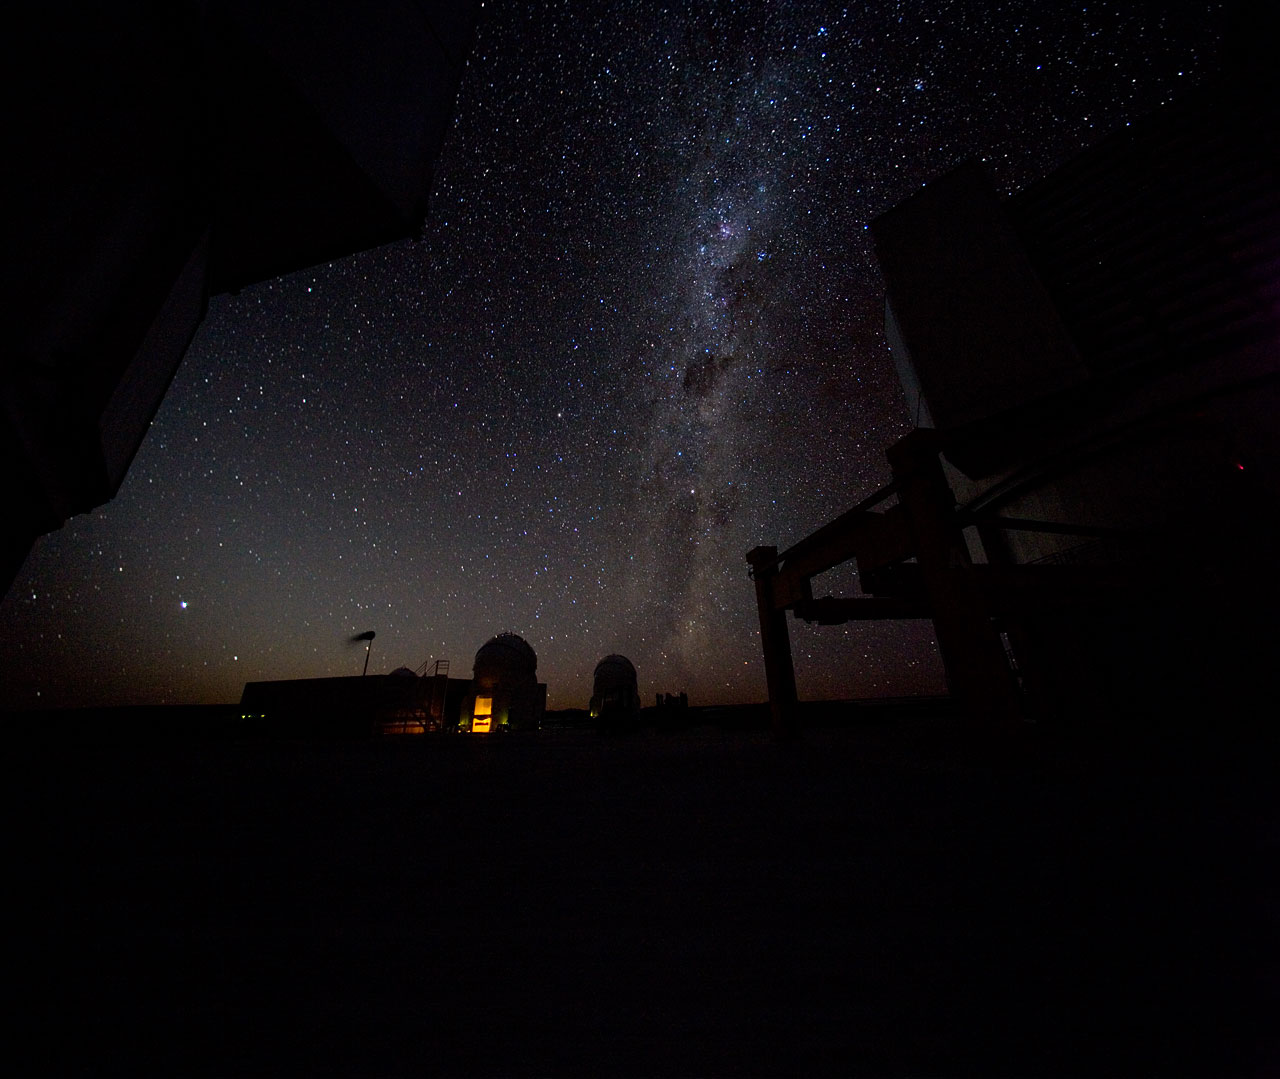 Mounted image 020: Milky Way over Paranal